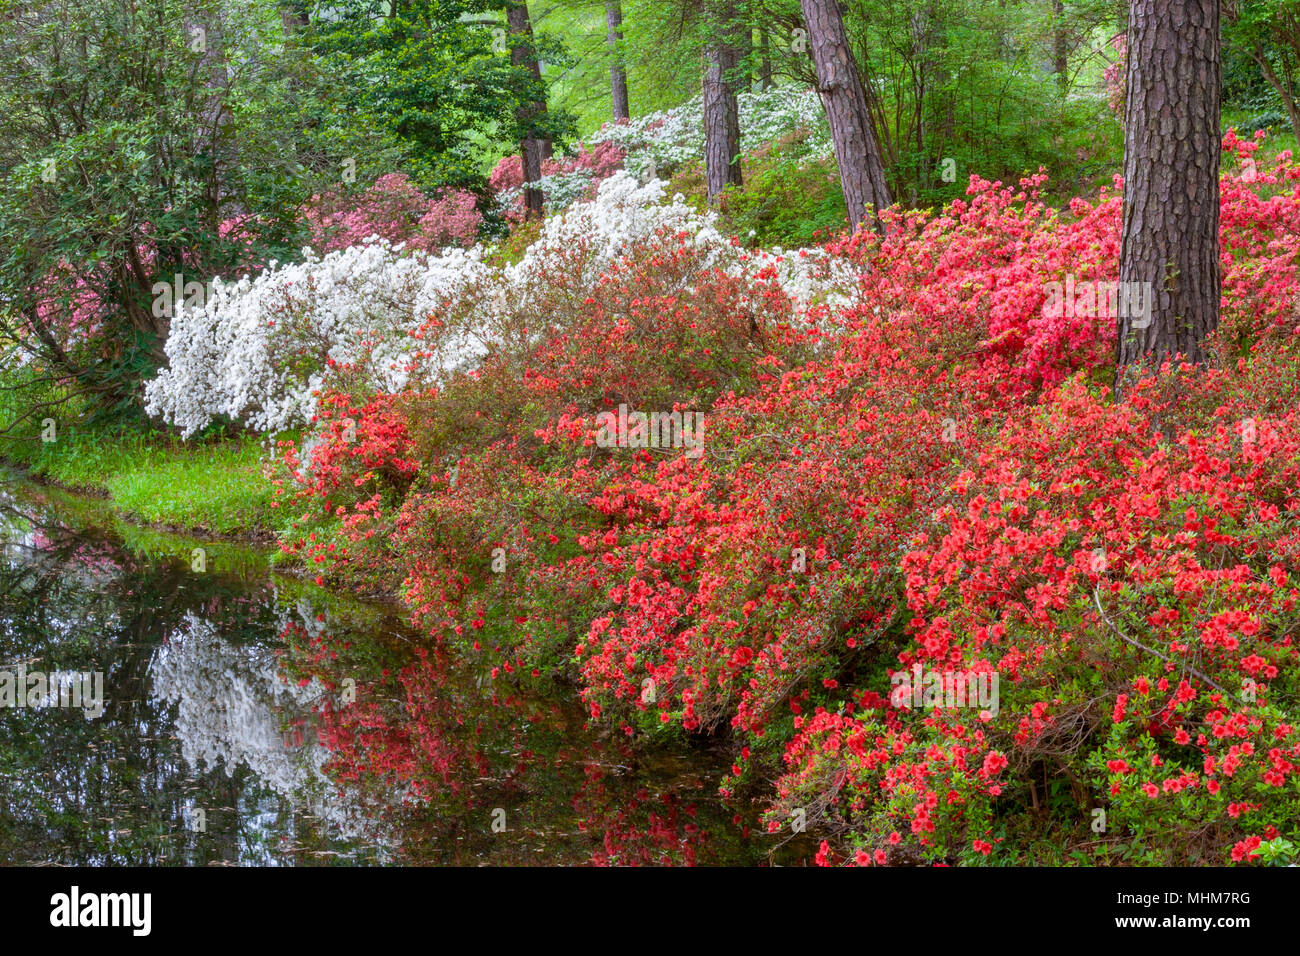 Georgia Hybrid Stock Photos & Georgia Hybrid Stock Images - Alamy